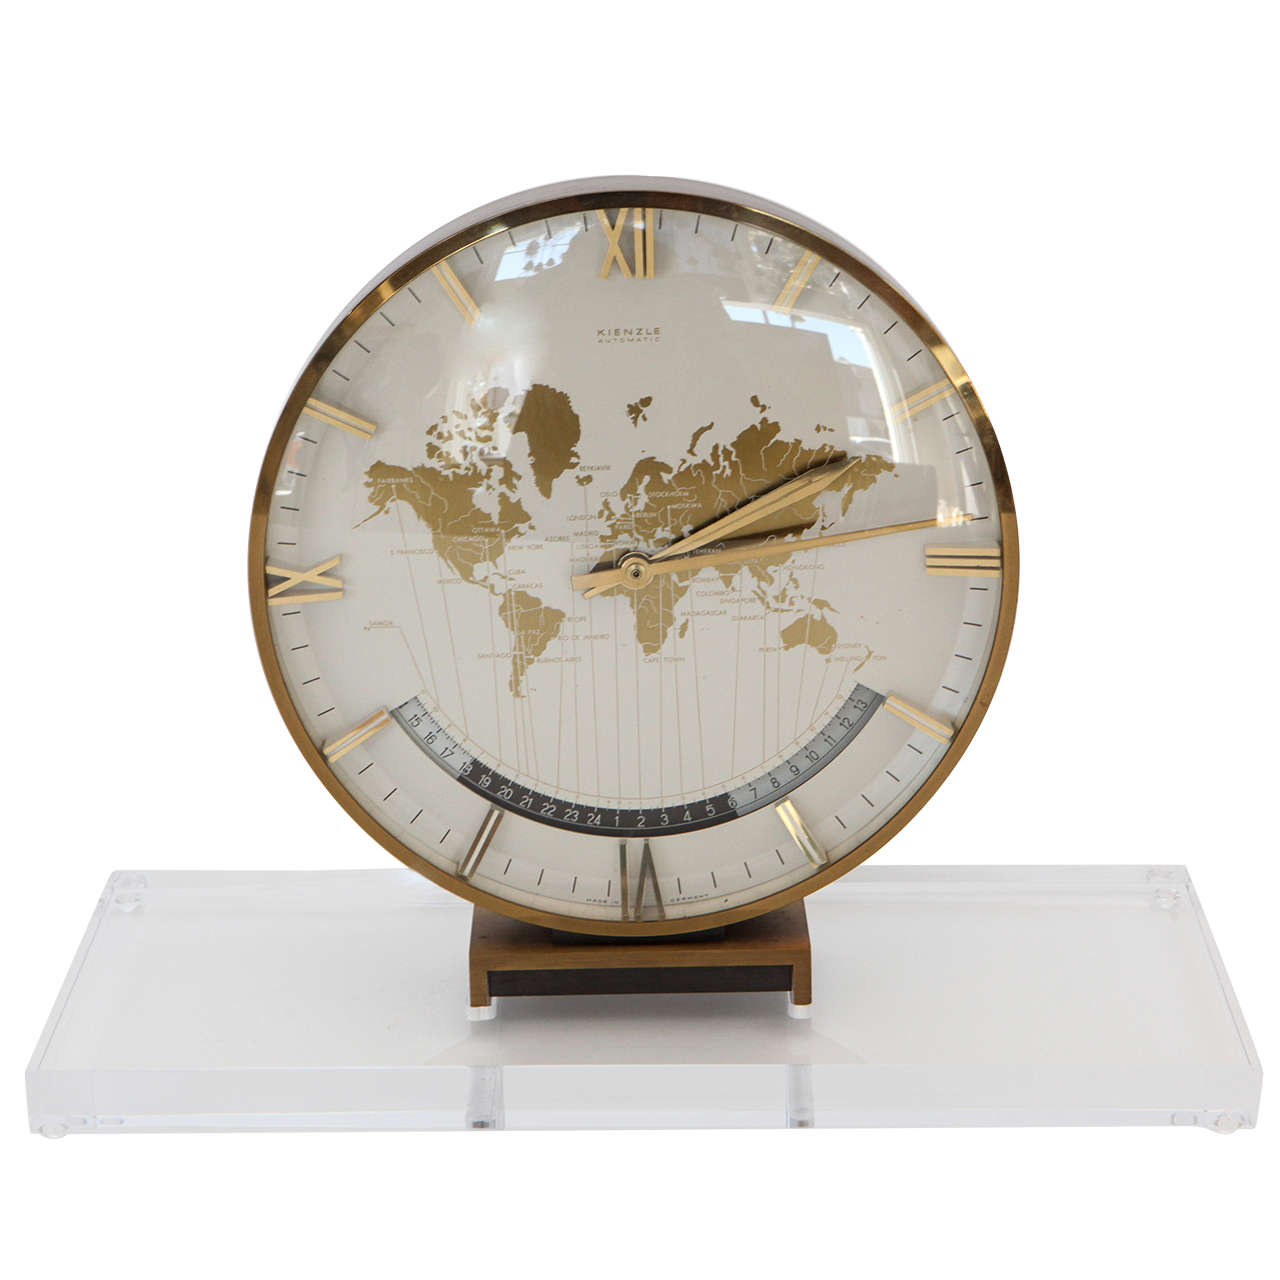 World Table Clock with Base, 1960s